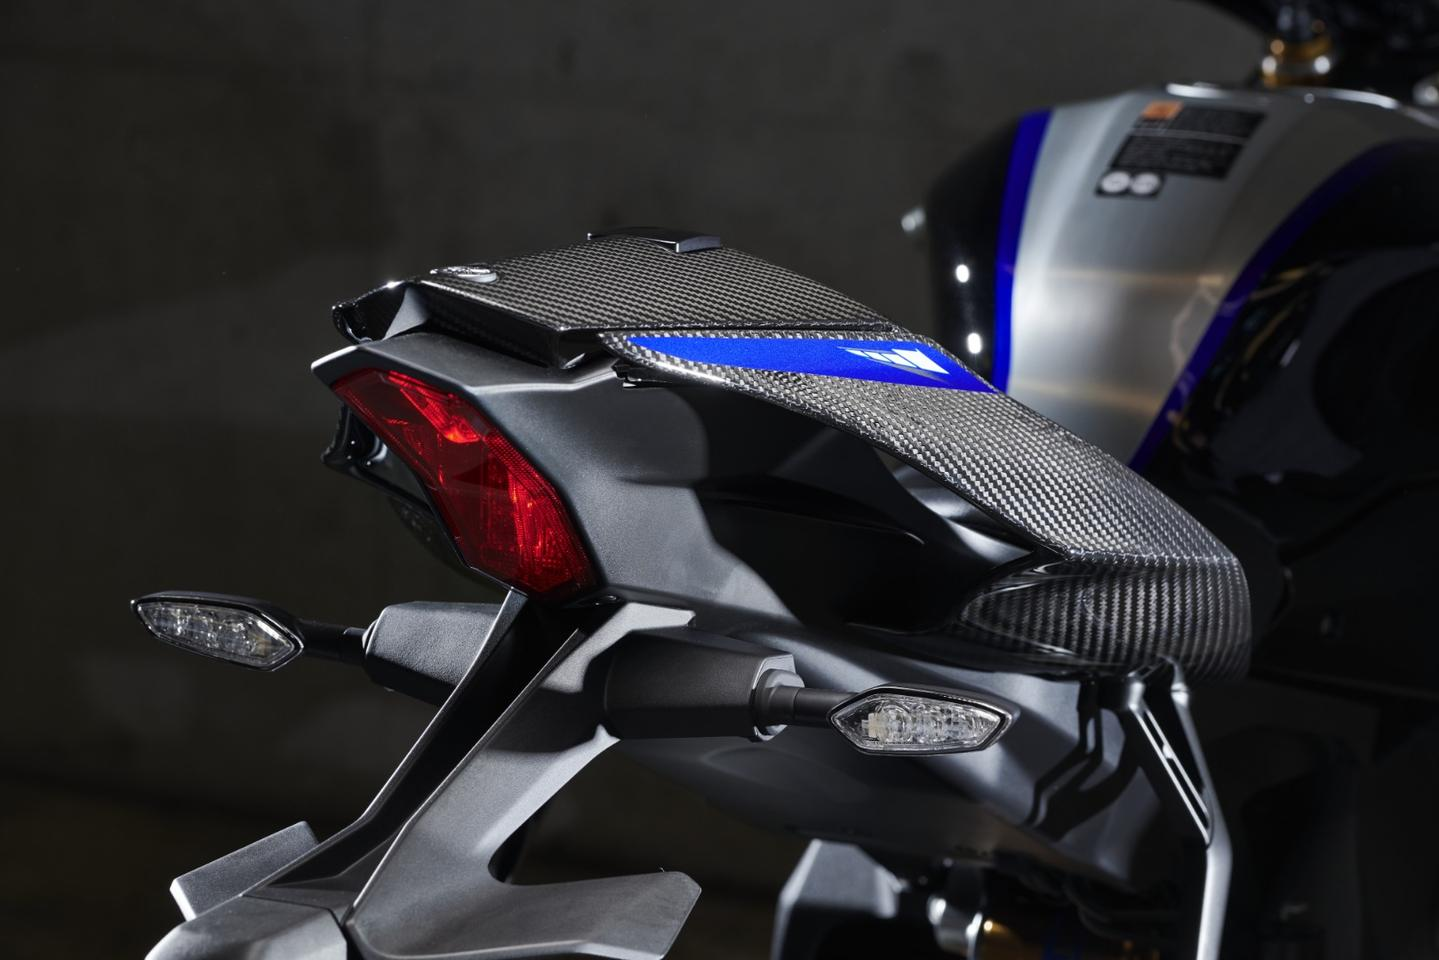 Yamaha launches a new, Euro V-compatible R1 and R1M for 2020